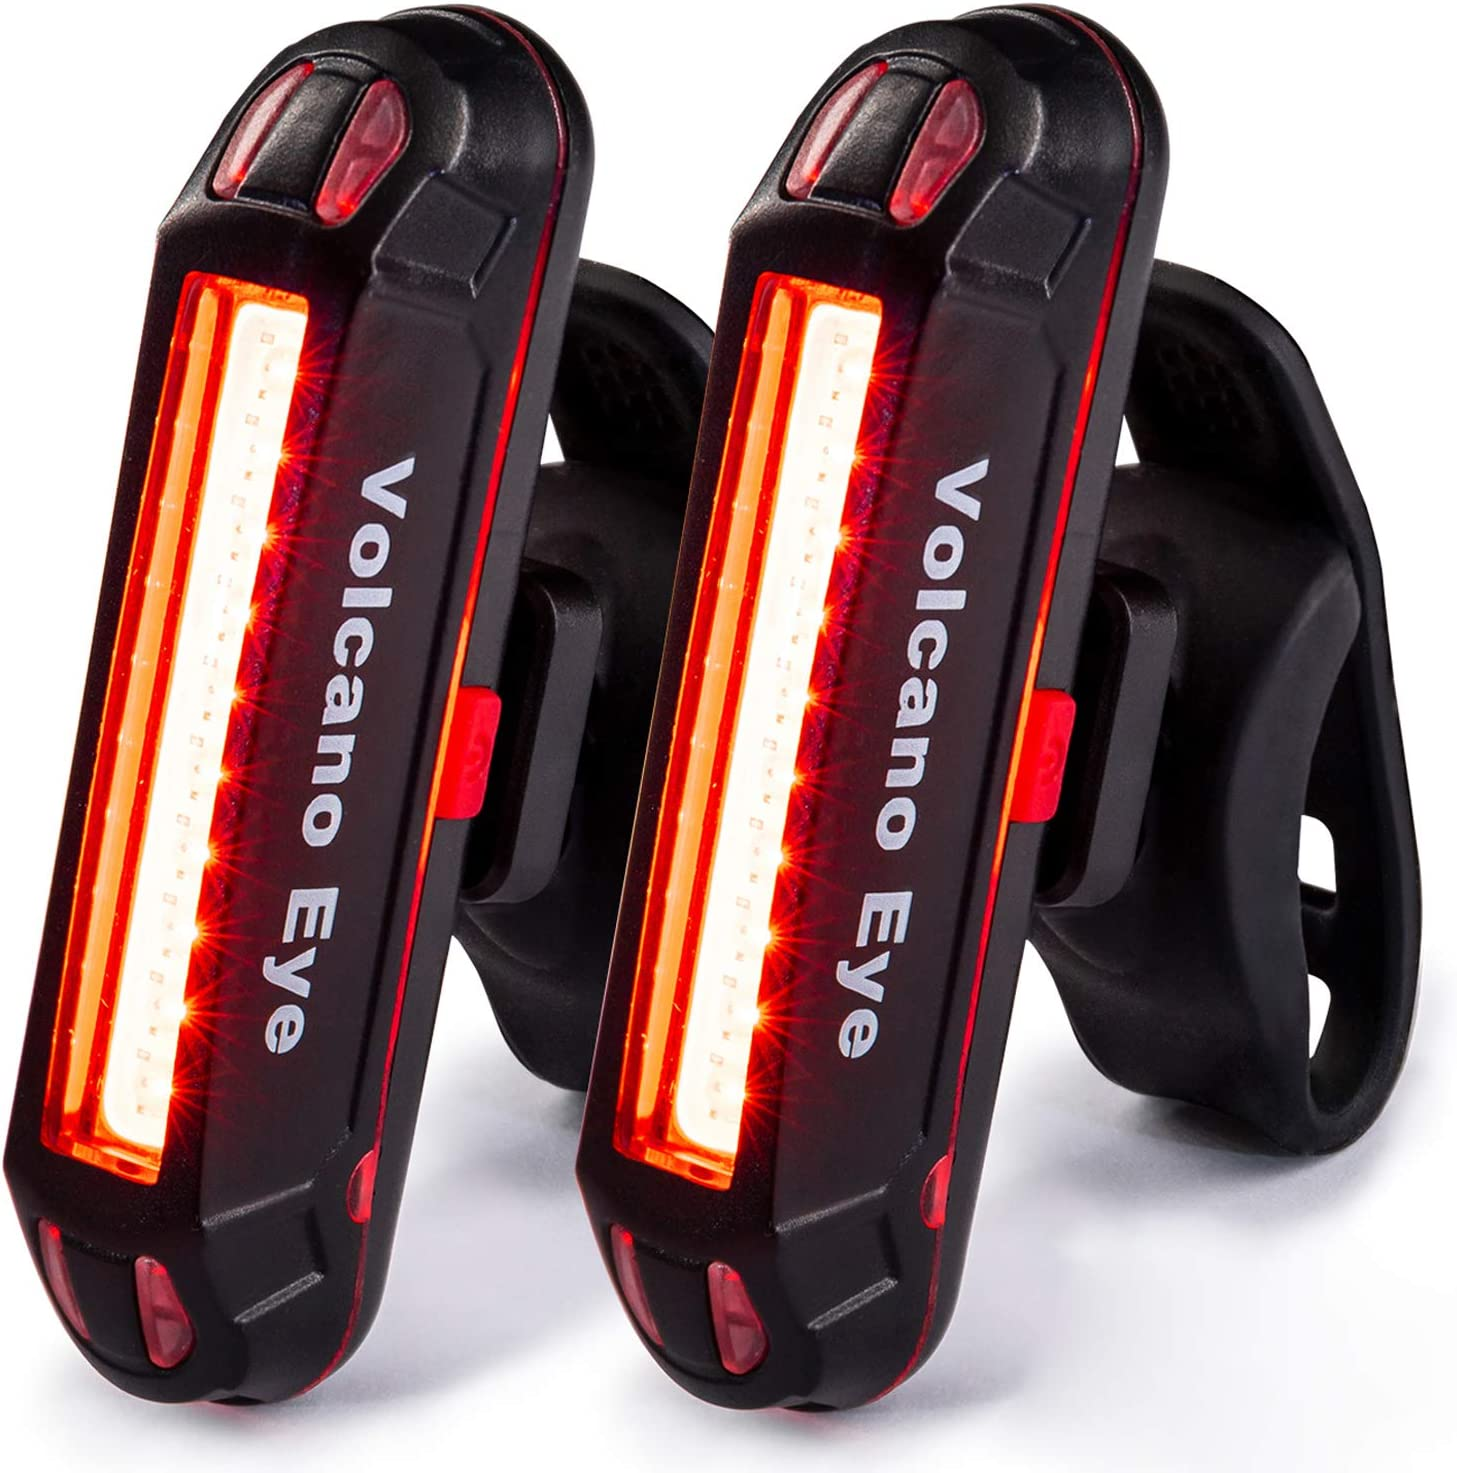 Volcano Eye Bike Rear Tail Light USB Rechargeable LED Safety Light for Bicycle,